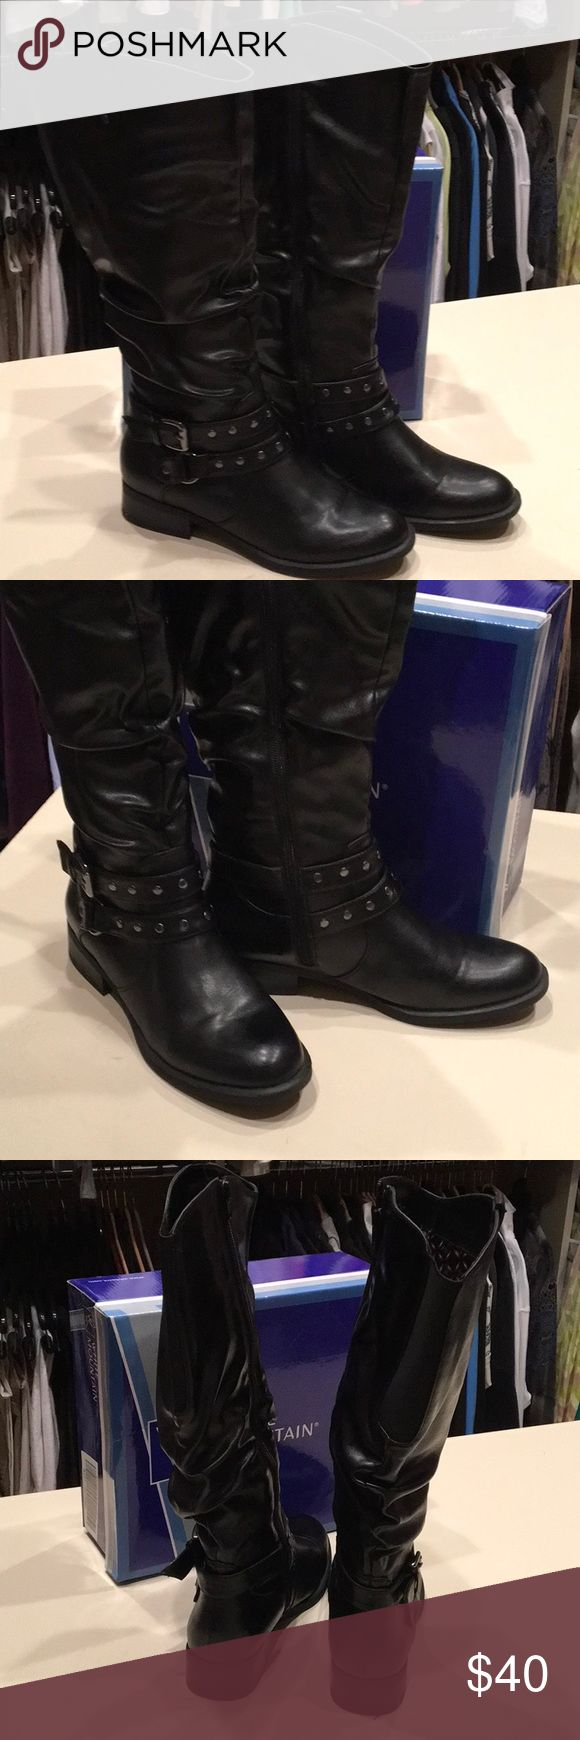 Boots Great pair of White Mountain boots. Buckled and side zip make these boots look great!! Excellent condition, worn 1-2 times. White Mountain Shoes Heeled Boots